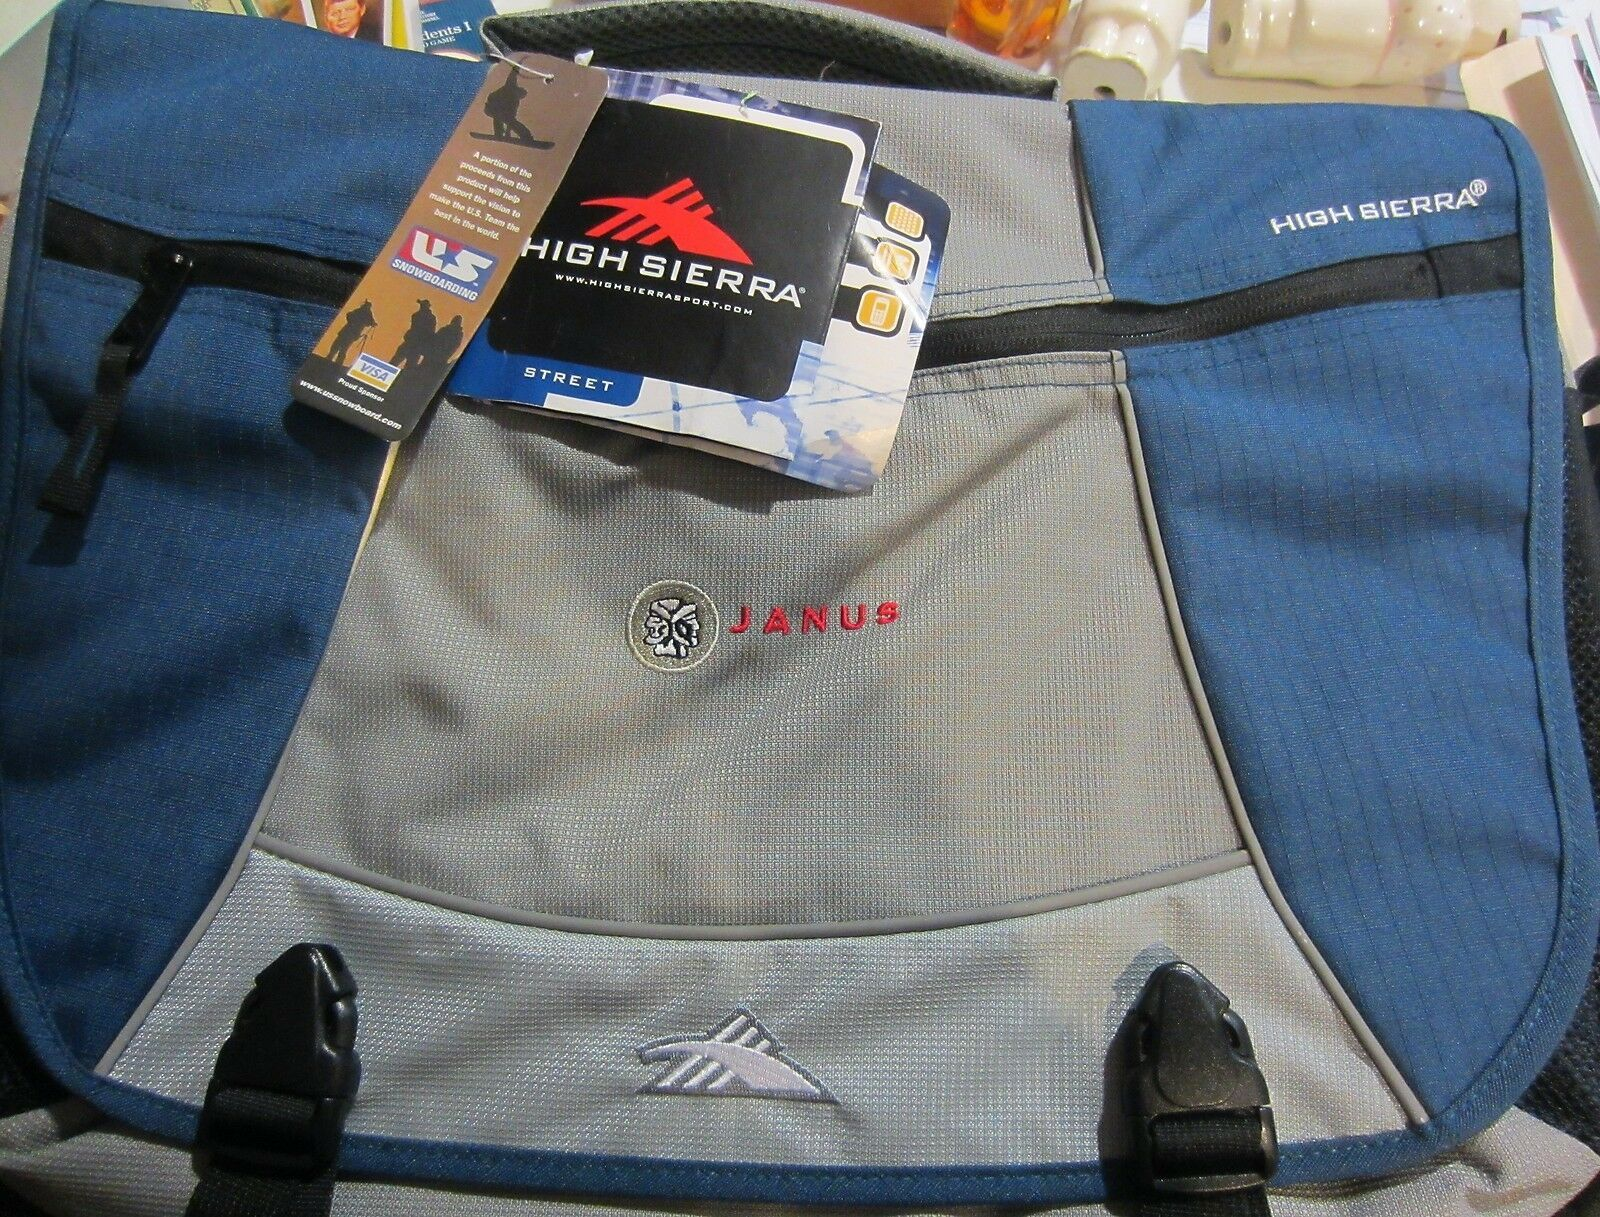 High Sierra Messenger Bag Tank Blue Gray Padded - Travel - Work - new with tags - $50.33